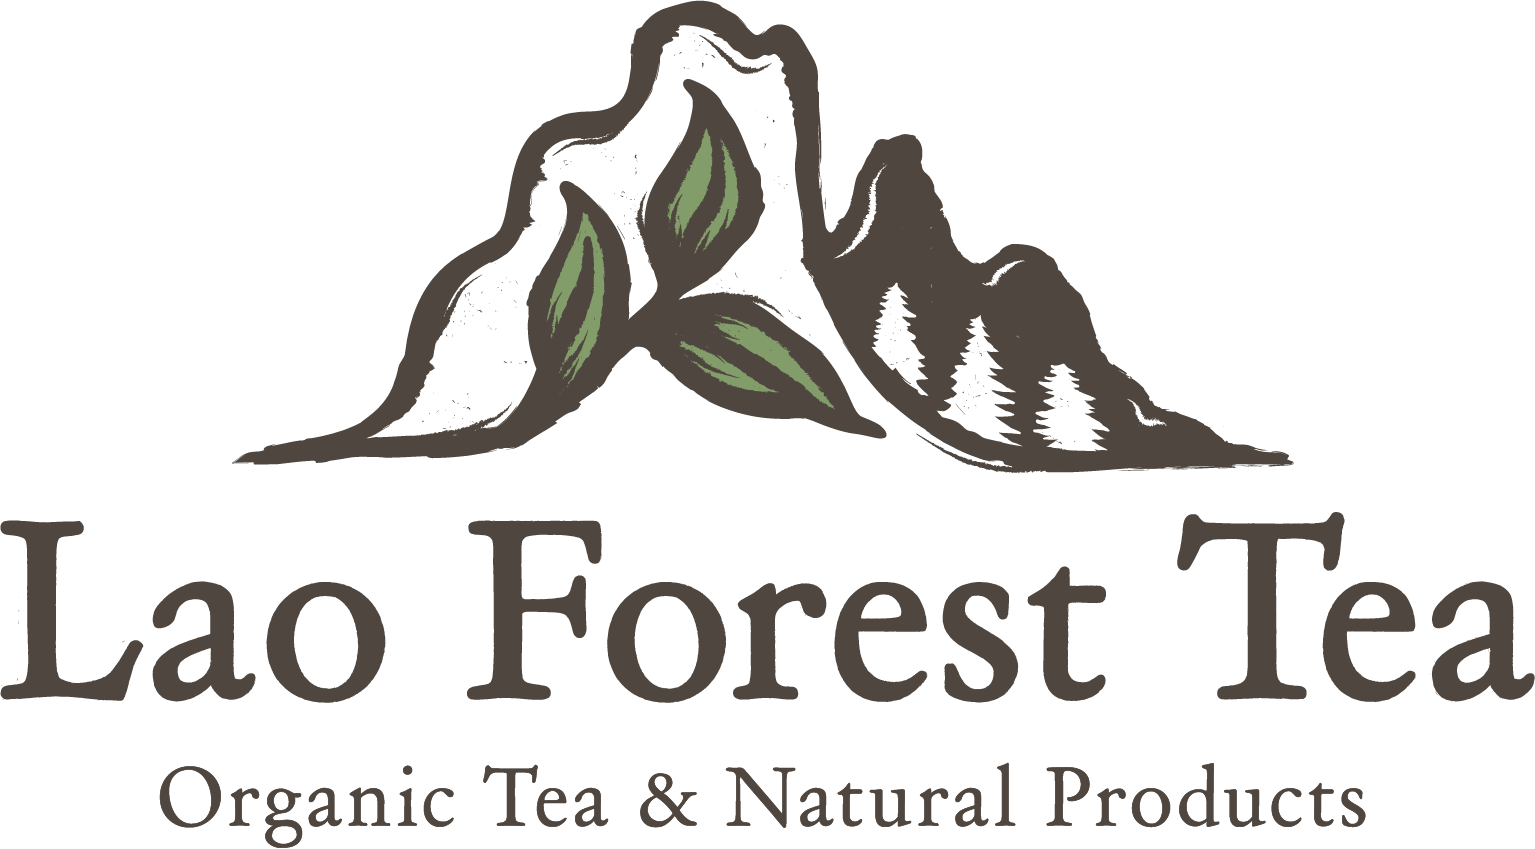 Lao Forest Tea